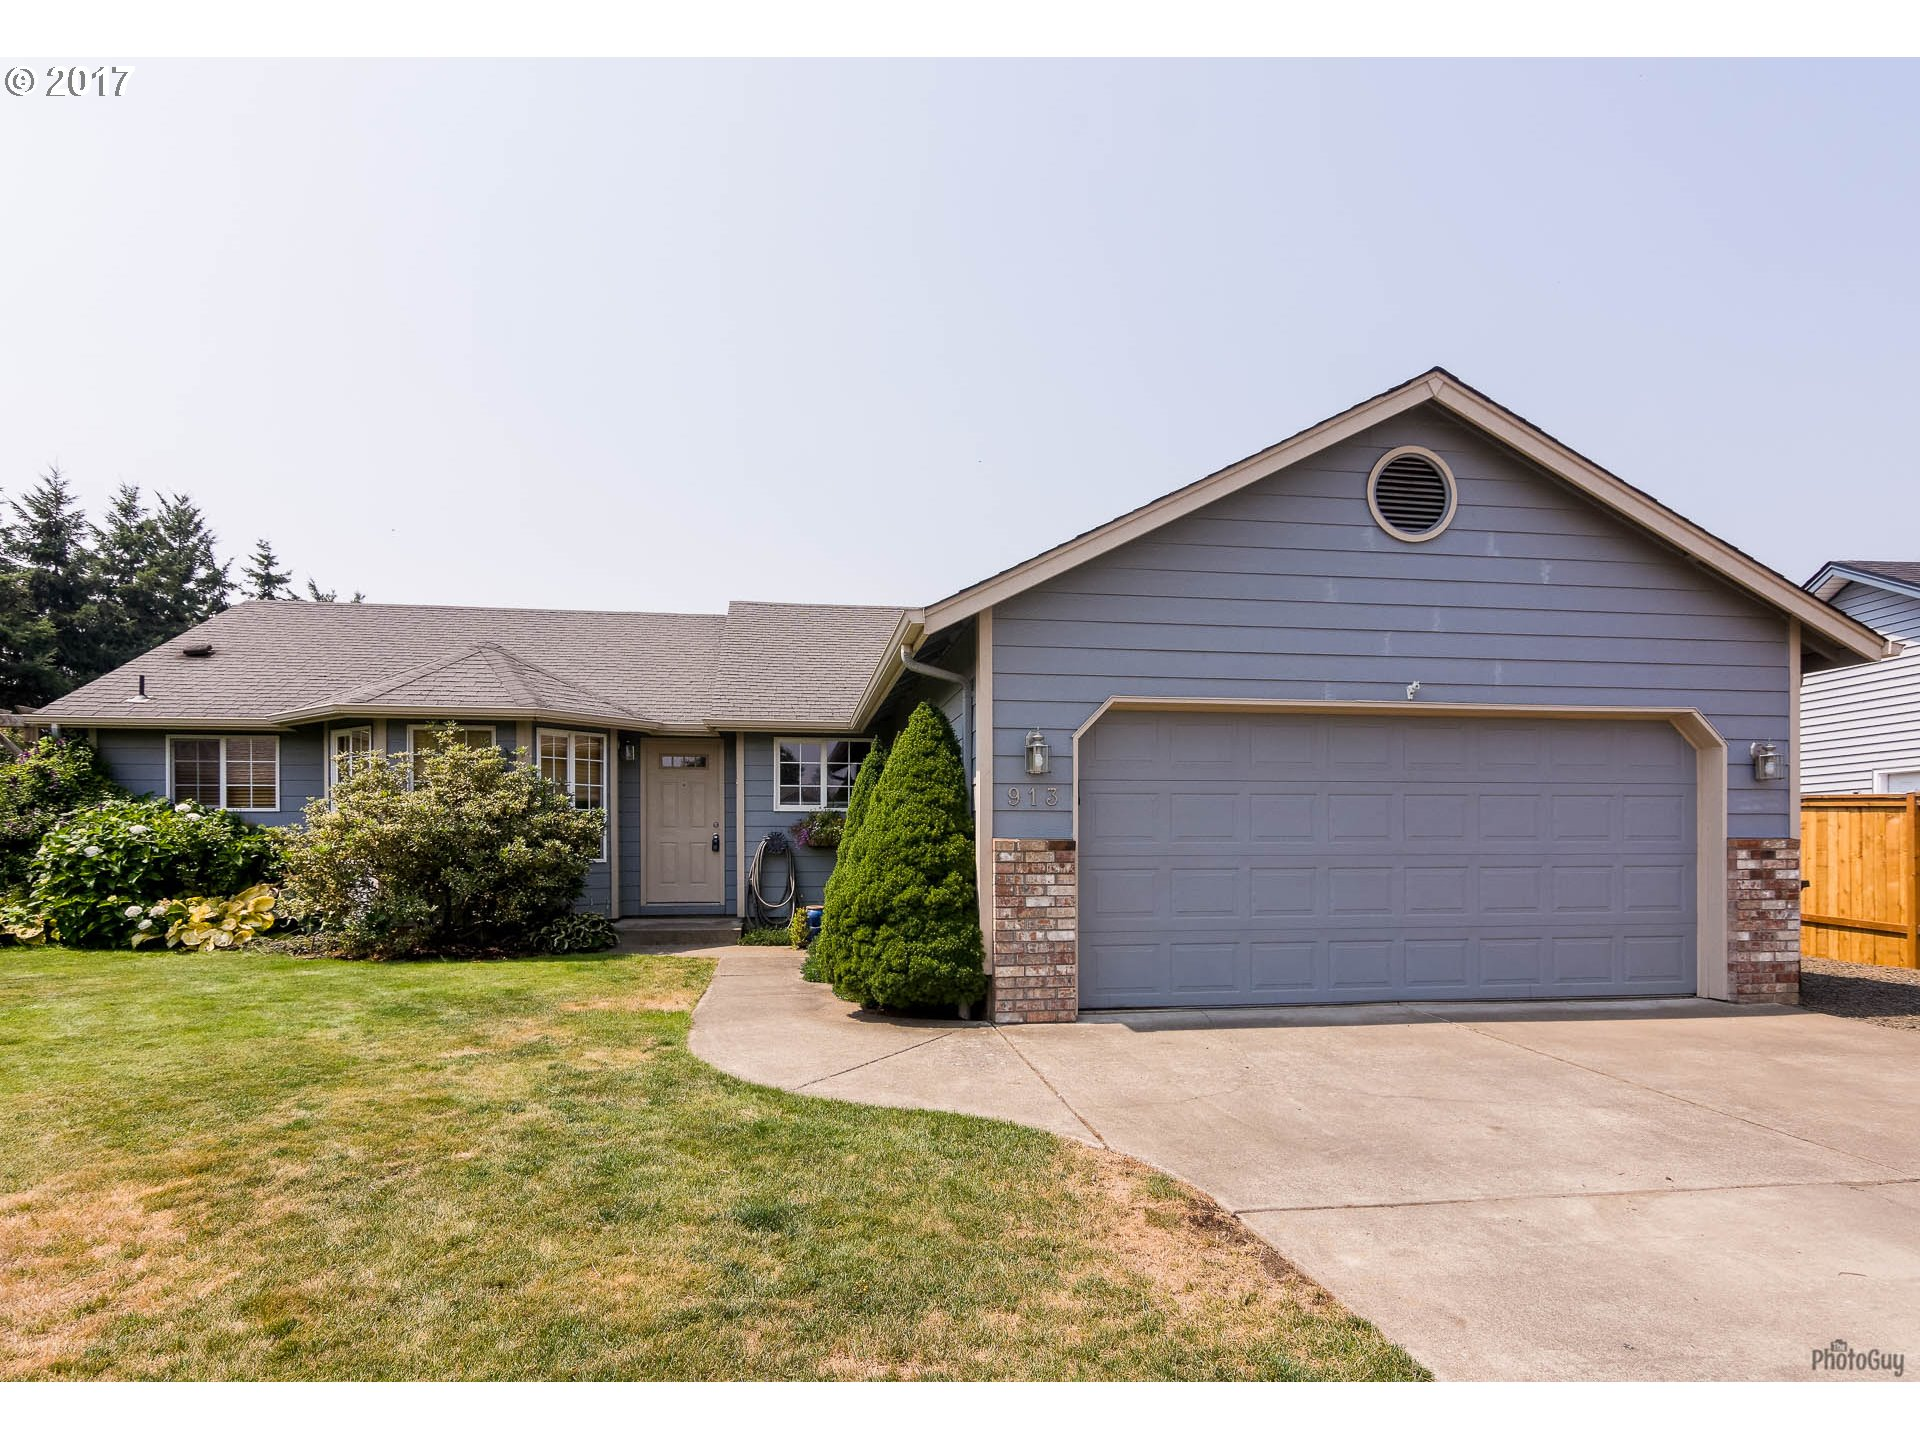 913 W 17th AVE, Junction City, OR 97448